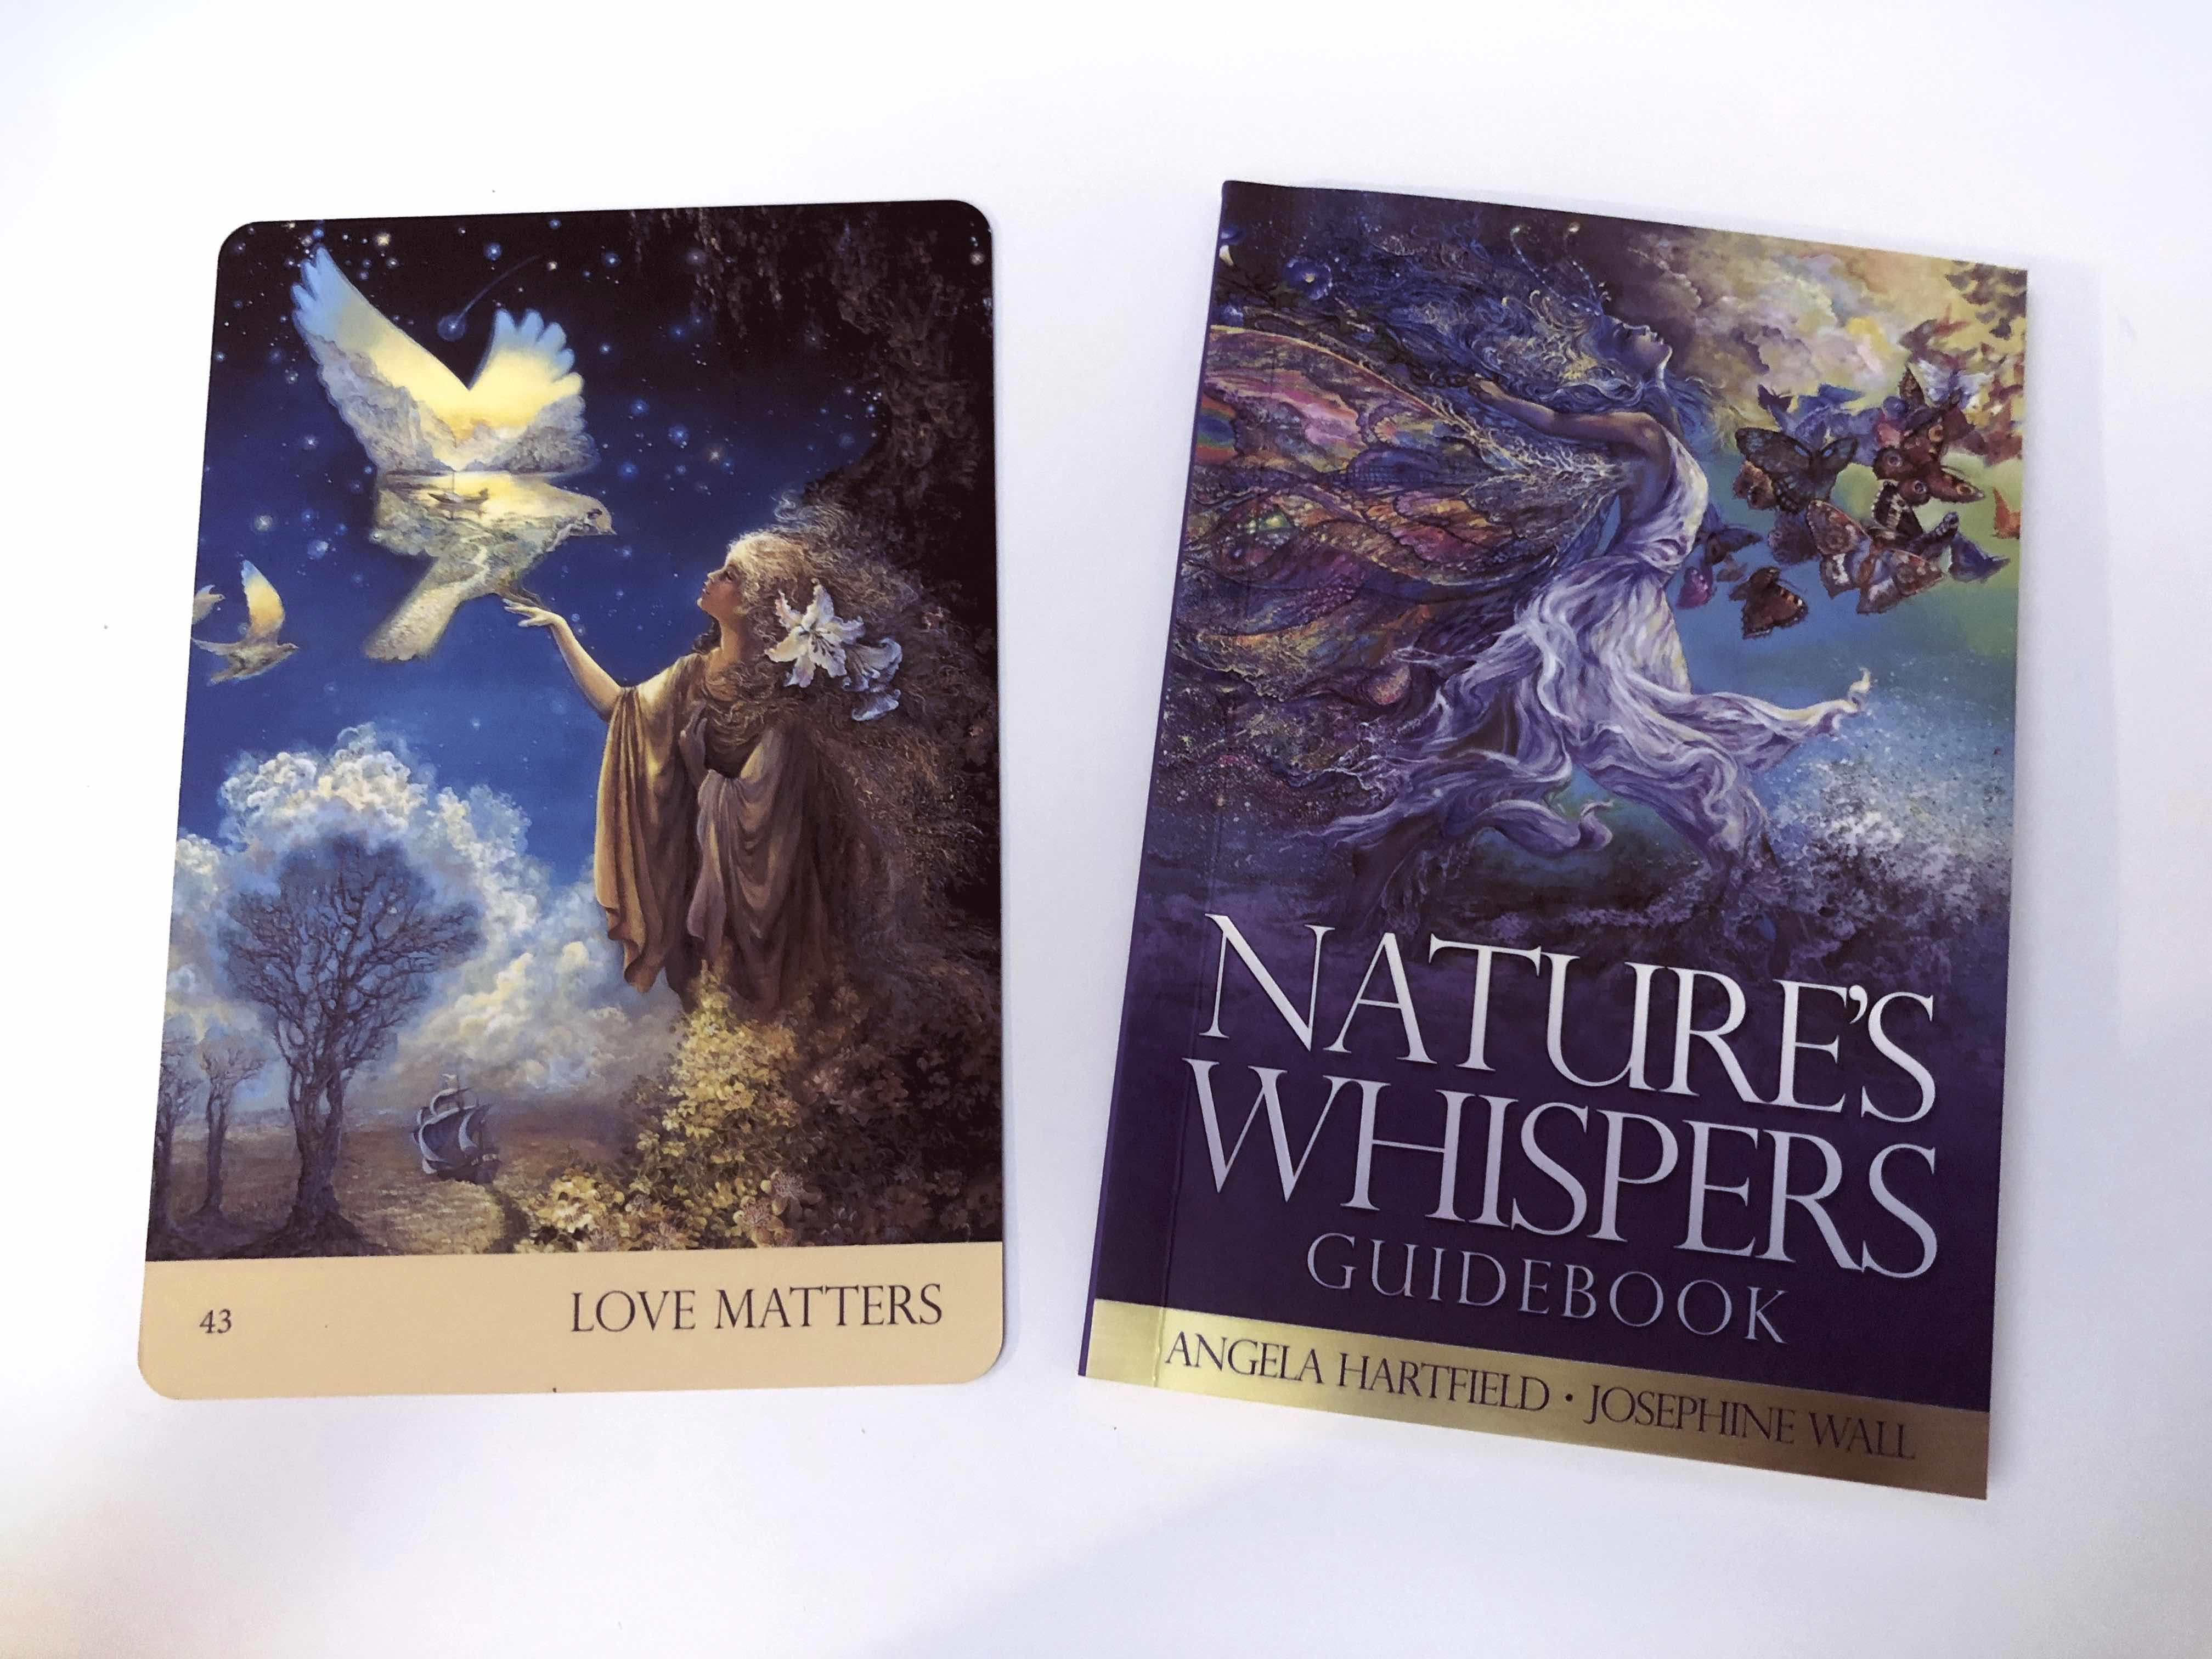 I want to fall in love again, love matters, oracle card